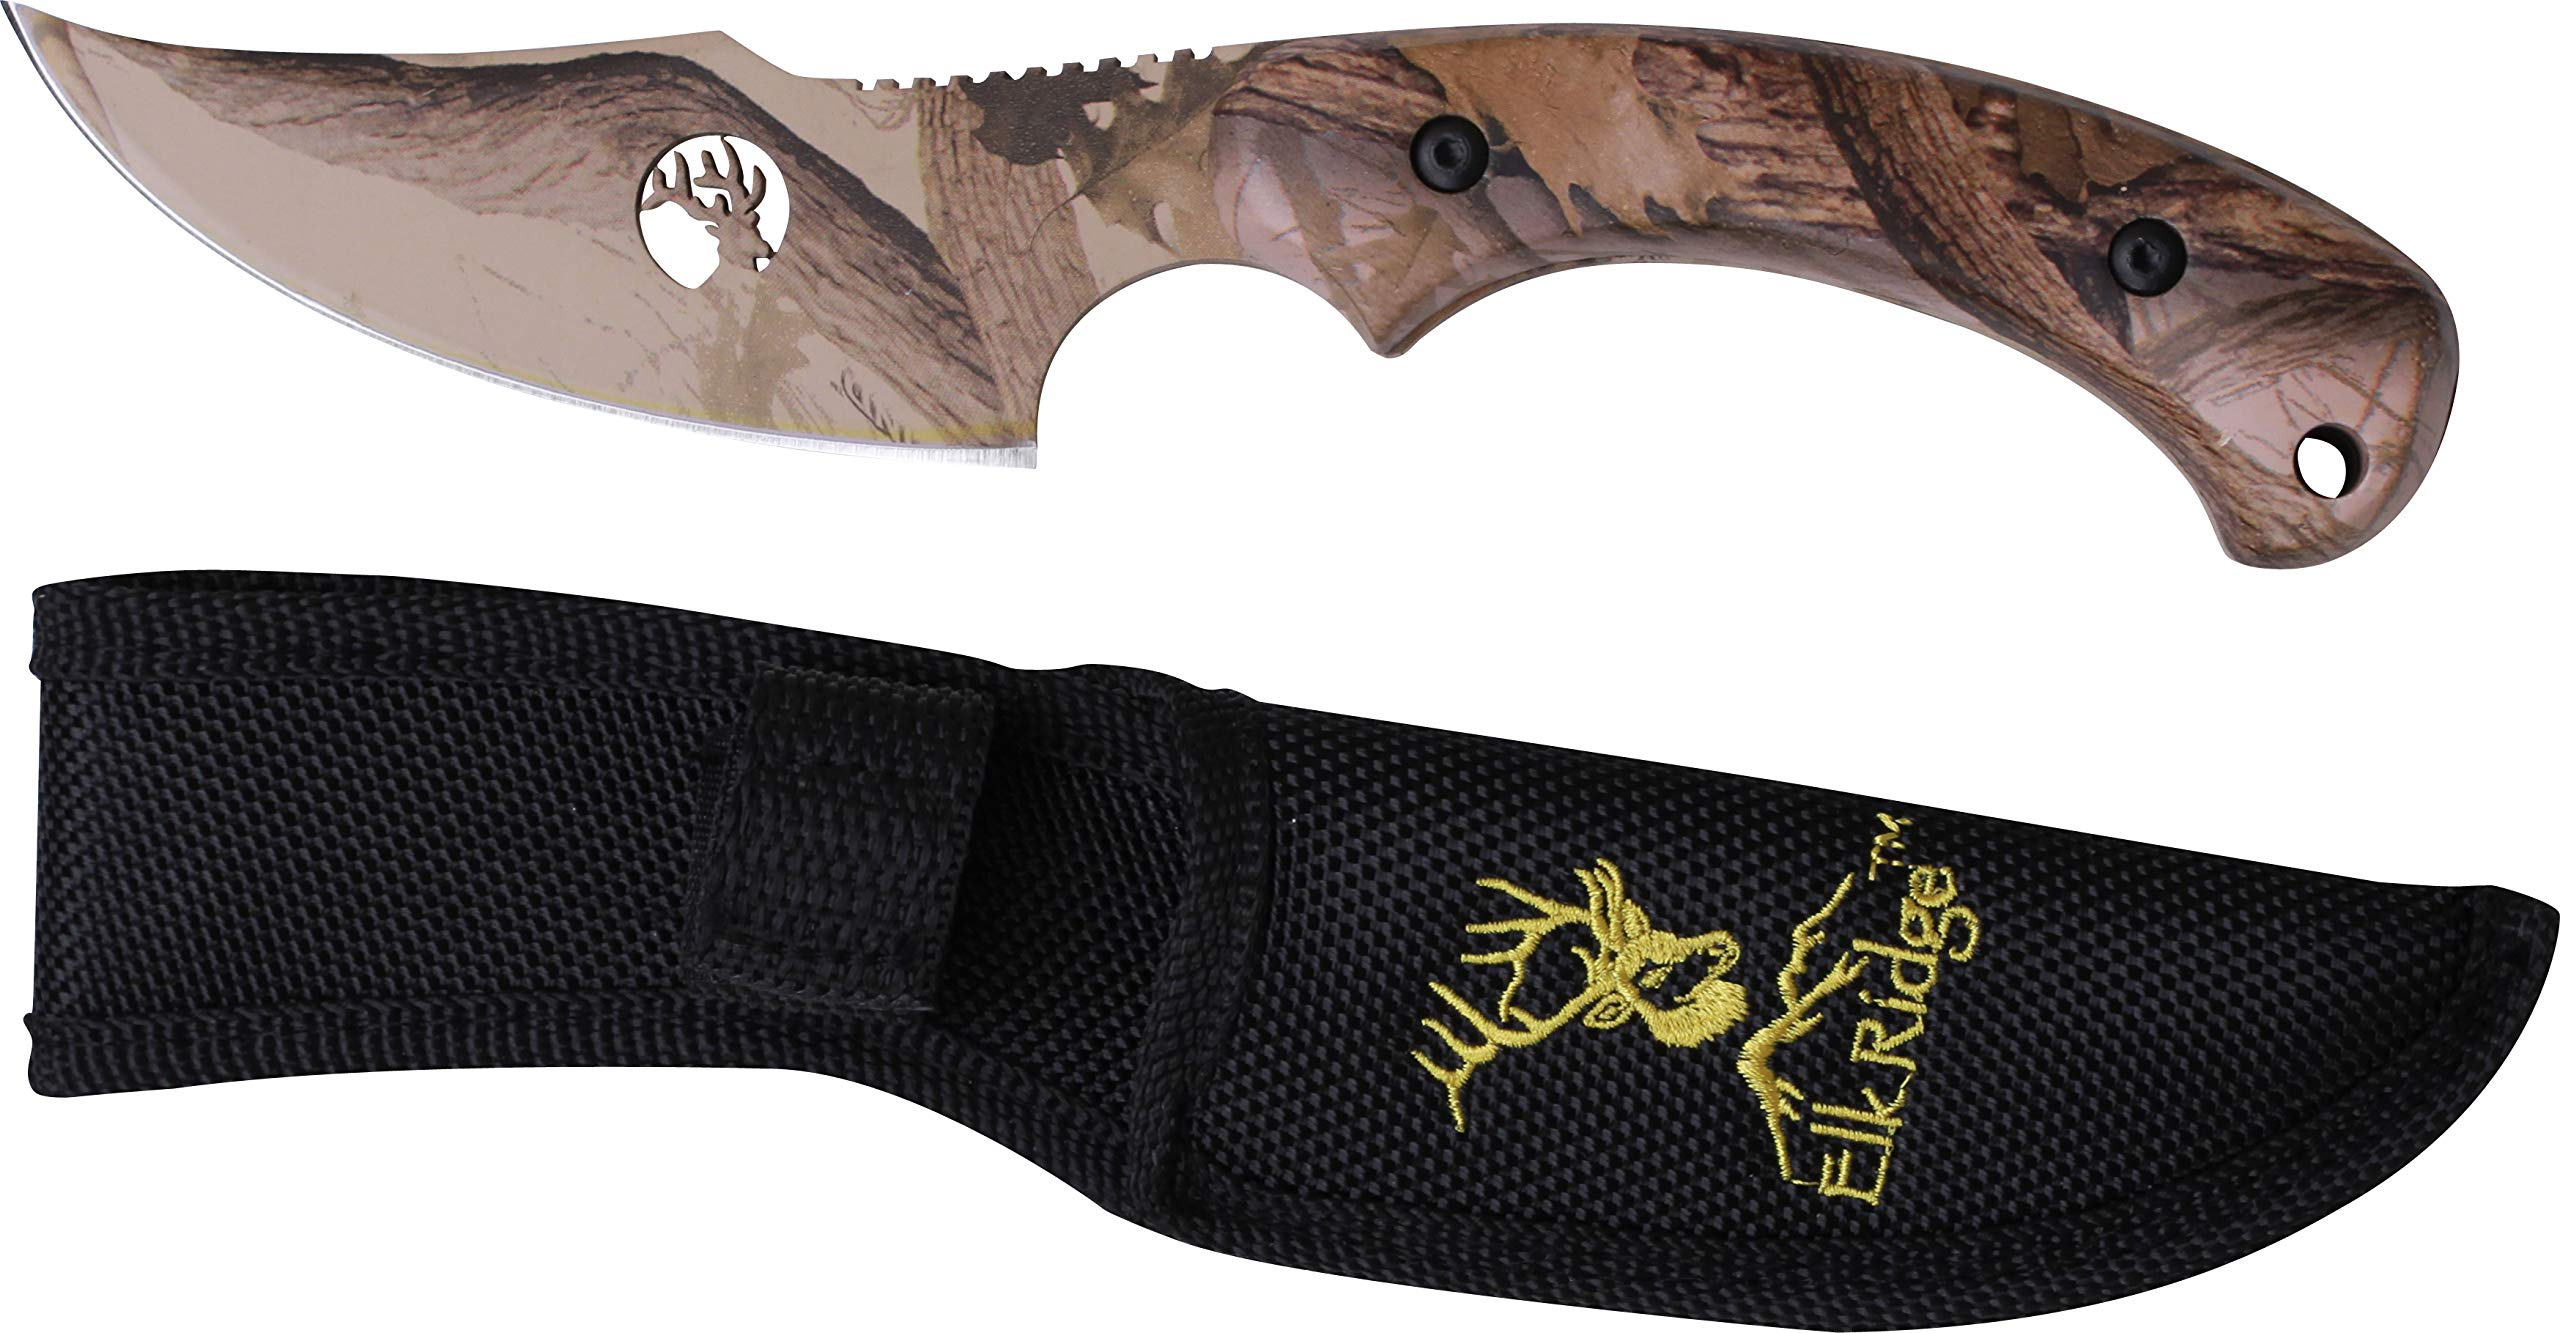 Elk Ridge TA-28GC Fixed Blade Knife 8-Inch Skinner Designed by Tom Anderson by Elk Ridge